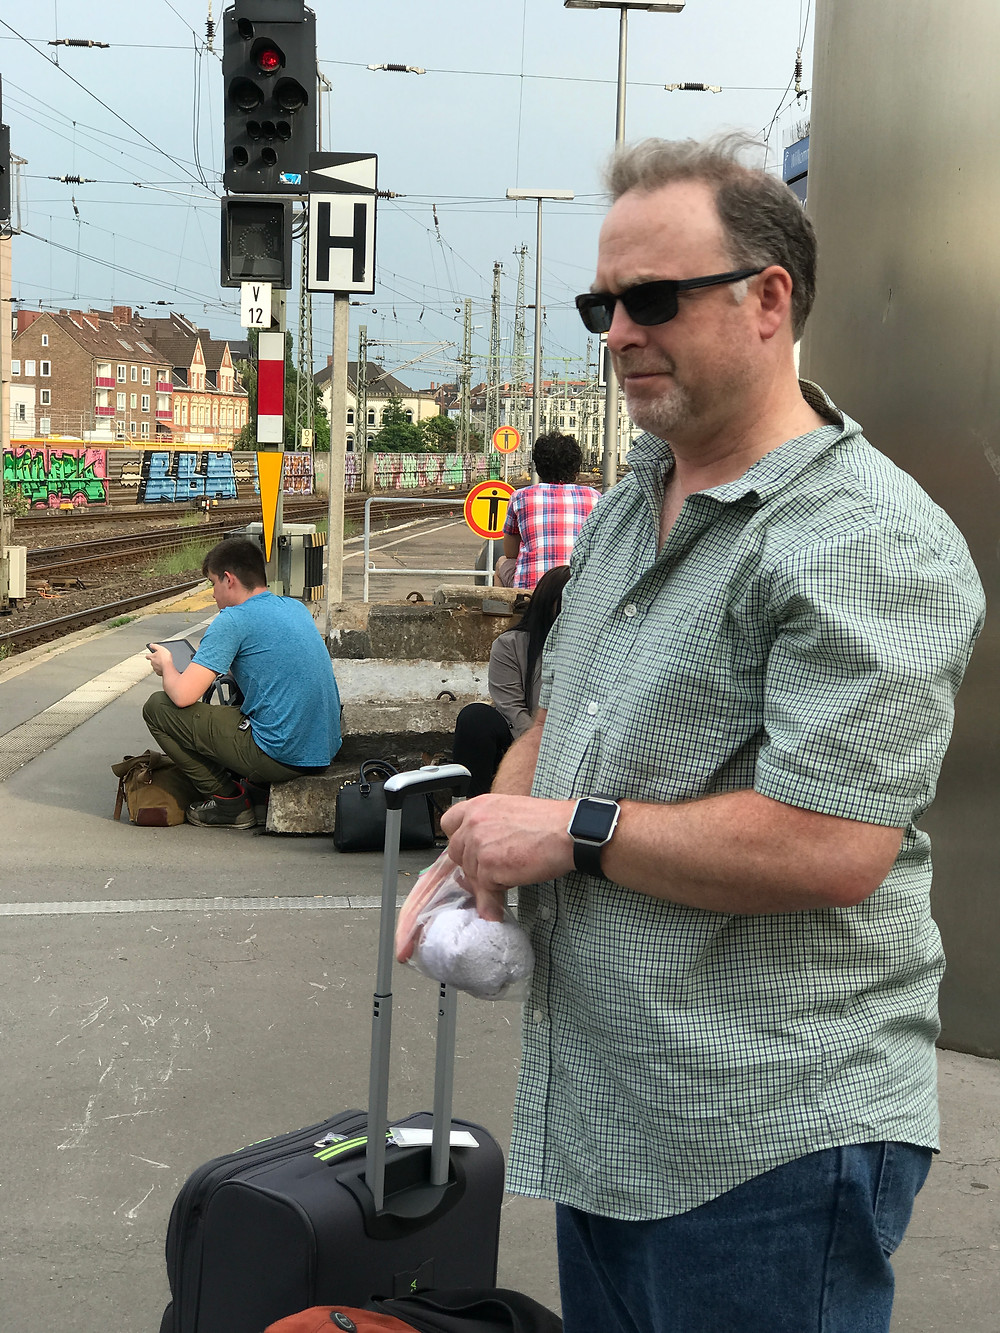 Pat standing guard with our bags at the Hanover Germany Train station while I'm walking around taking pictures of people and trains at this German Train station.